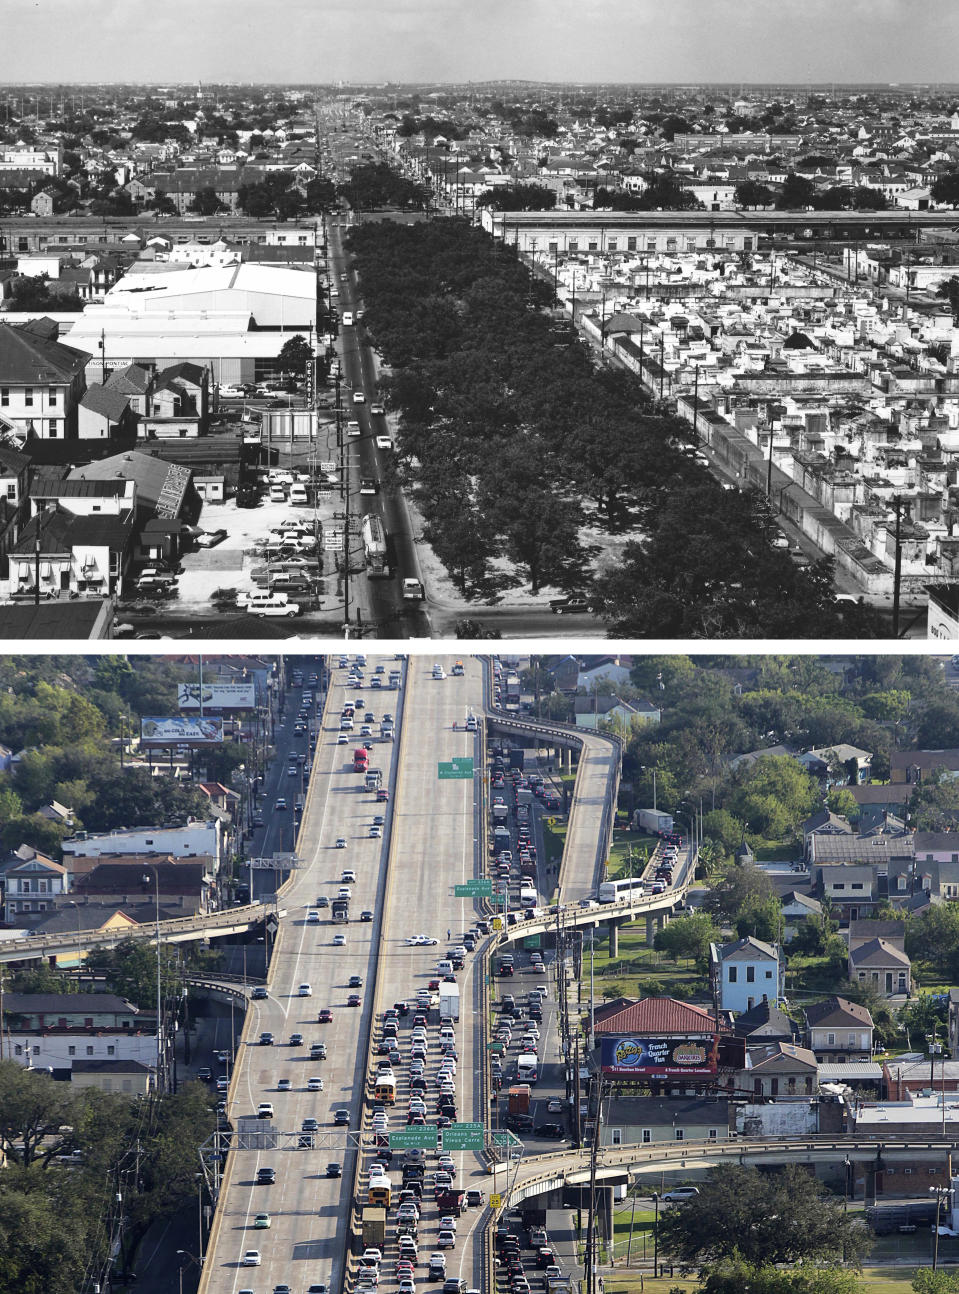 This photo combination shows an aerial view of Claiborne Avenue lined with oak trees in the heart of New Orleans in August 1968, top, and a view of the elevated expressway that now runs along Claiborne Avenue past Esplanade. (City Archives & Special Collections, New Orleans Public Library, top, and Gerald Herbert, bottom, via AP)